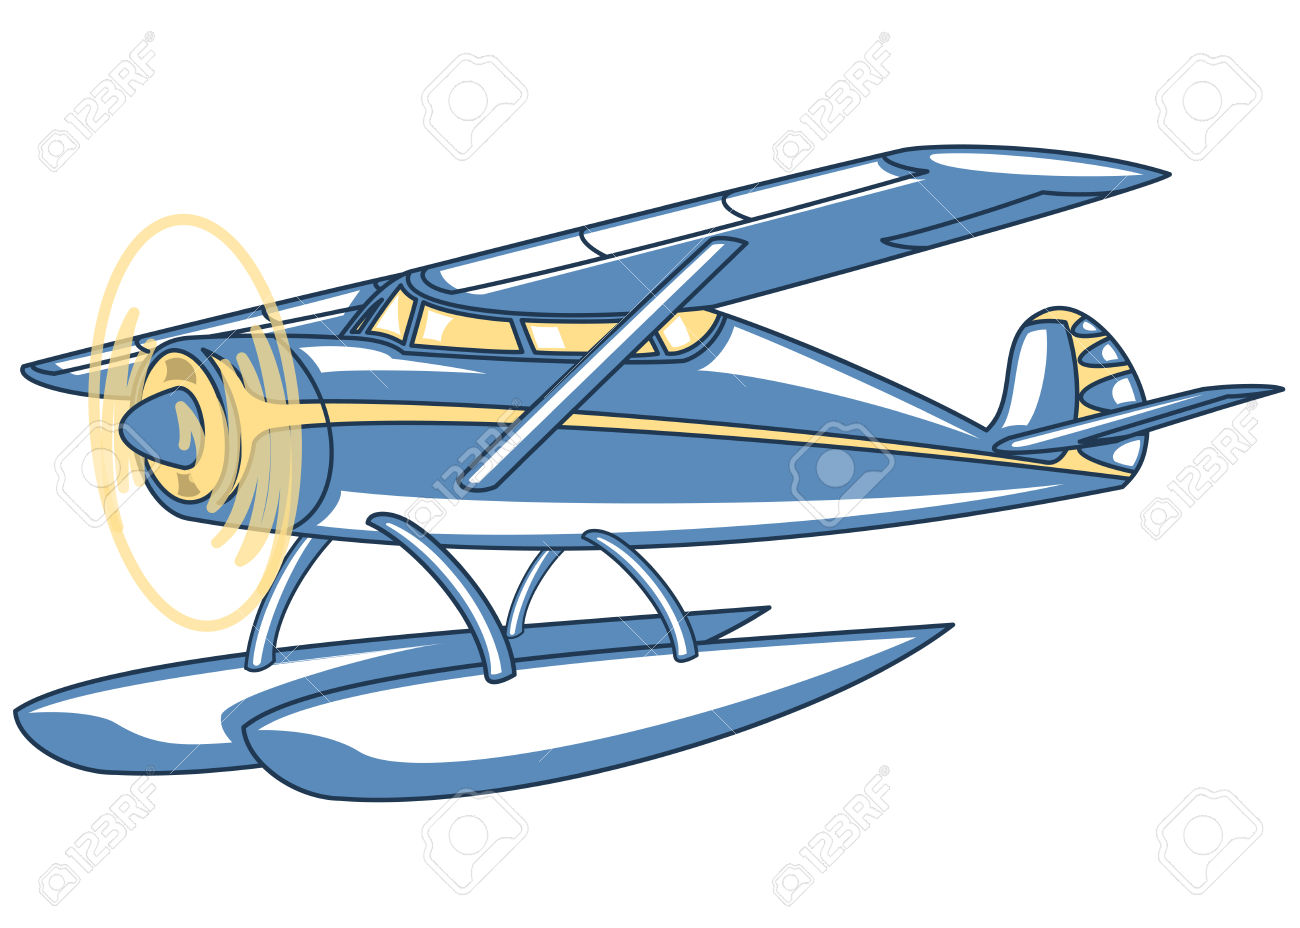 Vector Retro Seaplane. Illustration Clip Art Royalty Free Cliparts.